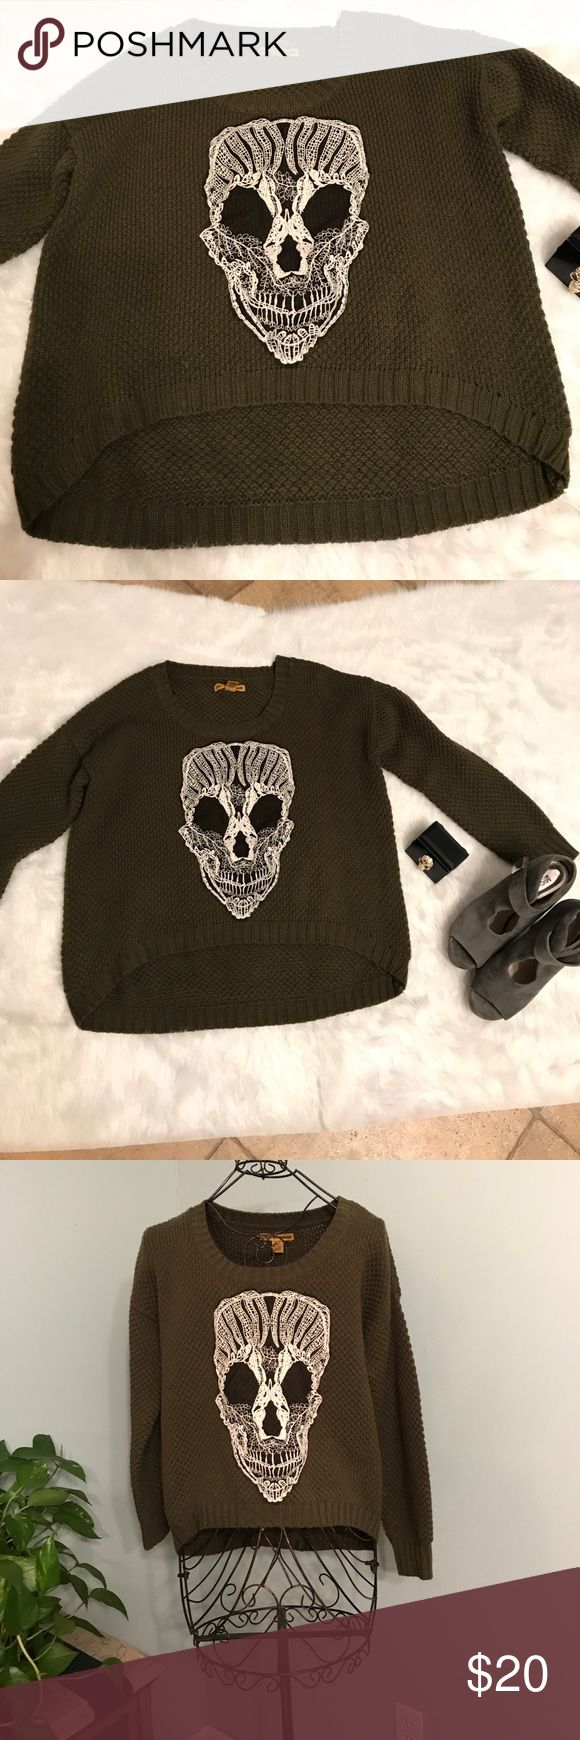 Love by design skull sweater Love by design skull sweater. Size XL. 100% acrylic. love by design Sweaters